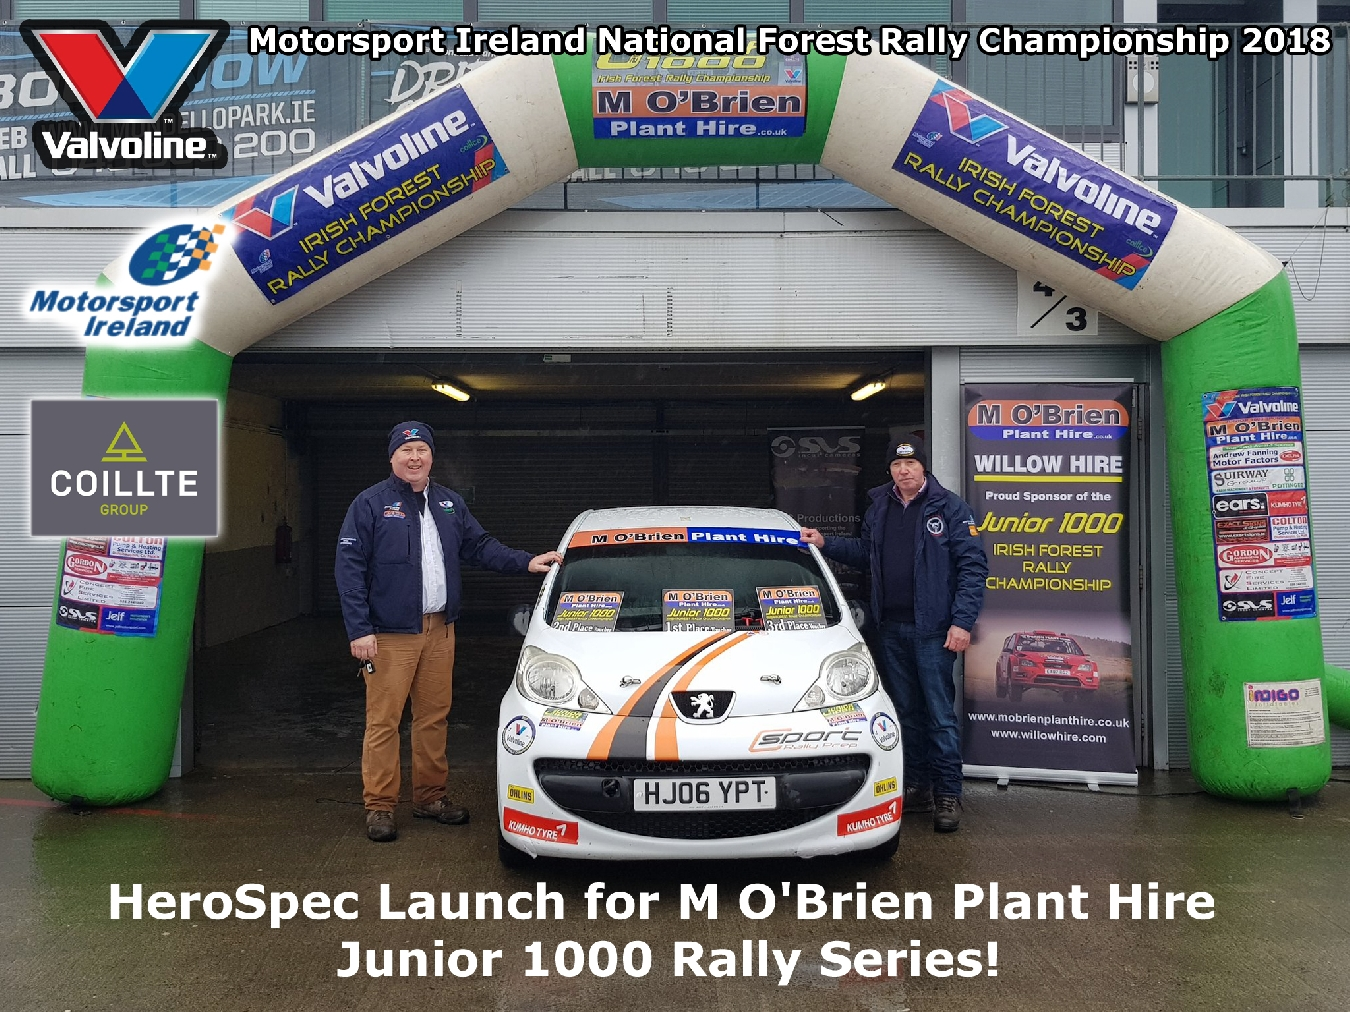 HeroSpec Launch for M O'Brien Plant Hire Junior 1000 Rally Series! 2018 Valvoline Motorsport Ireland National Forest Rally Championship